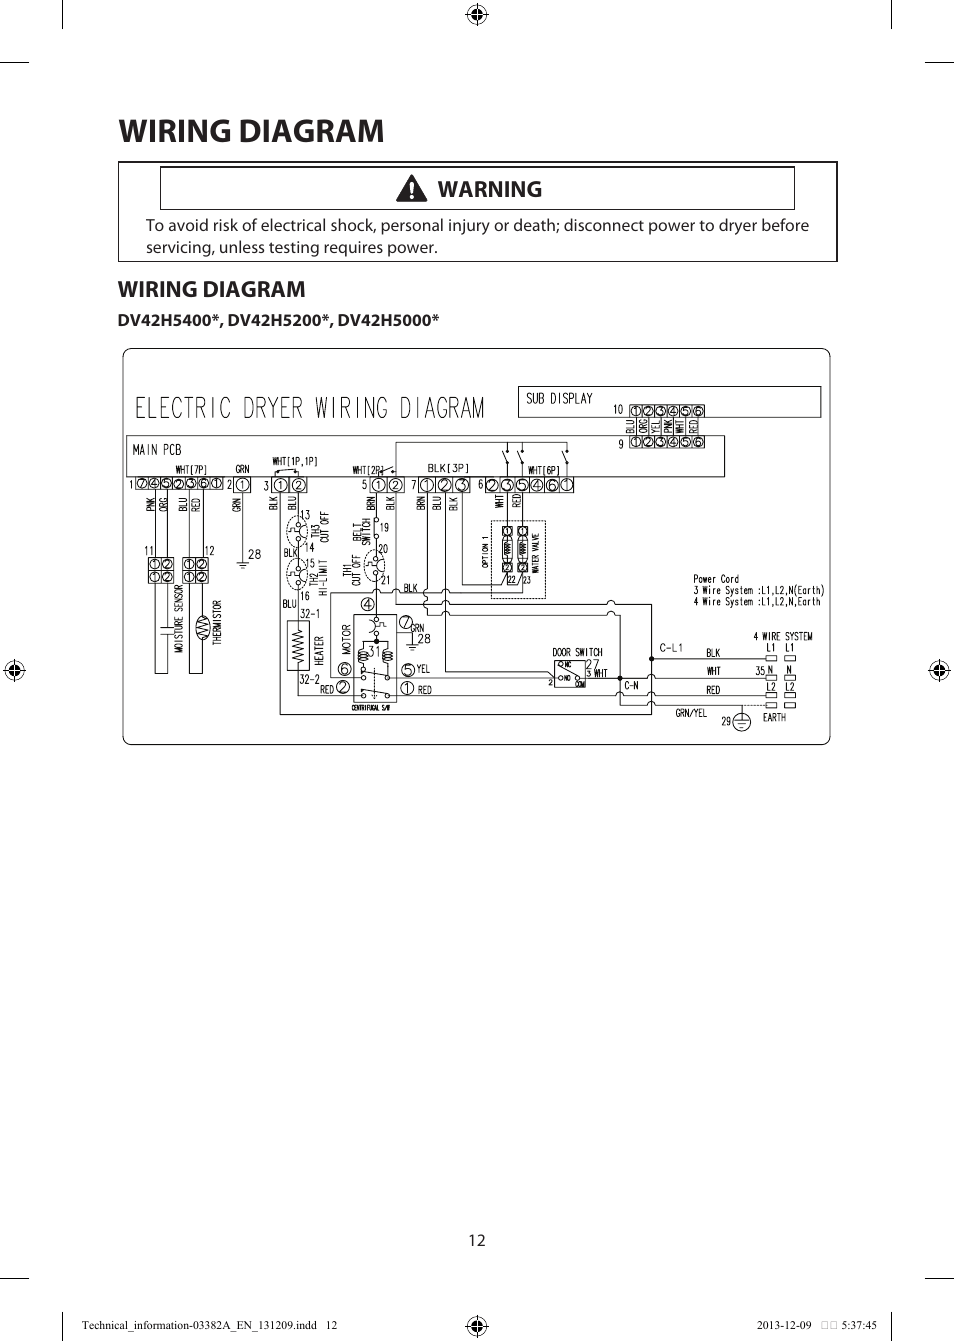 wiring diagram for kenmore dryer 1974 bmw 2002 diagram, warning | samsung dv42h5200ef-a3 user manual page 12 / 36